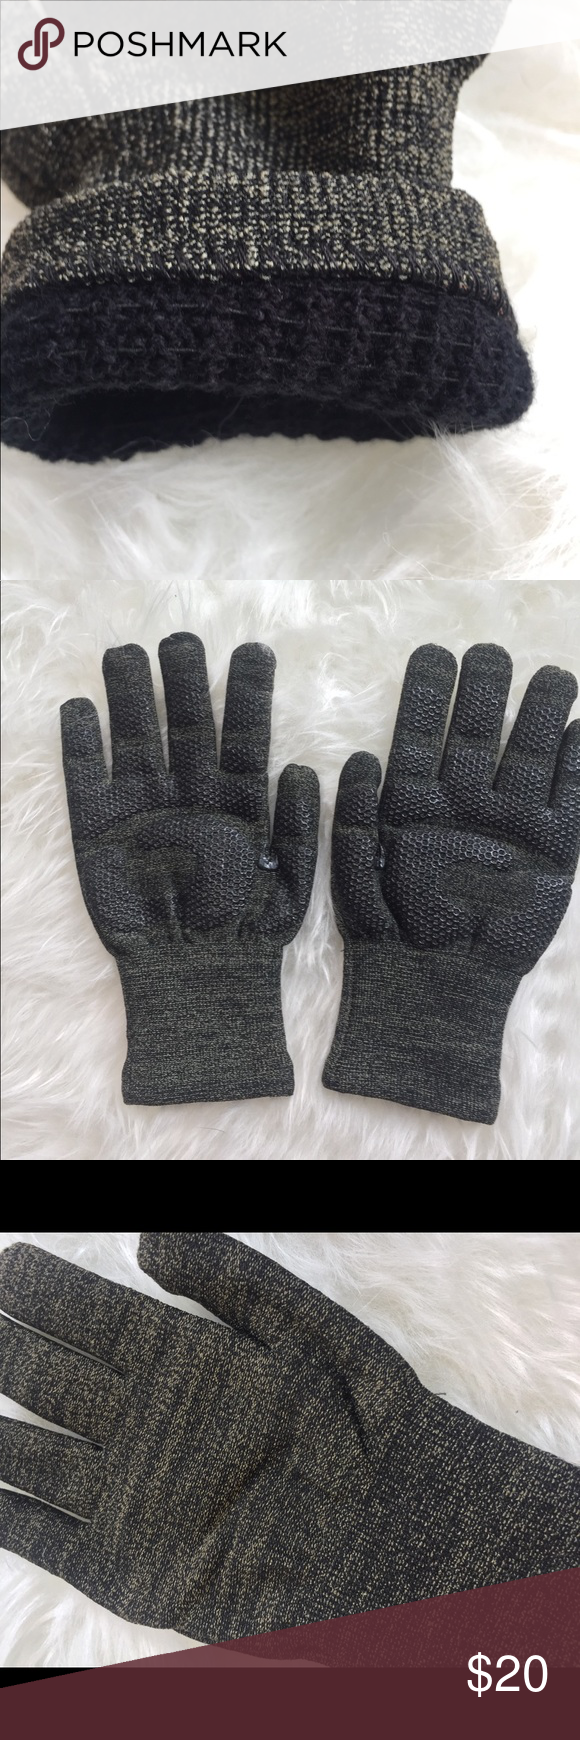 6207c1e2b7 NWOT Touch Screen Copper Infused Gloves GliderGloves Cooper Infused Touch  Screen Gloves Color is described as